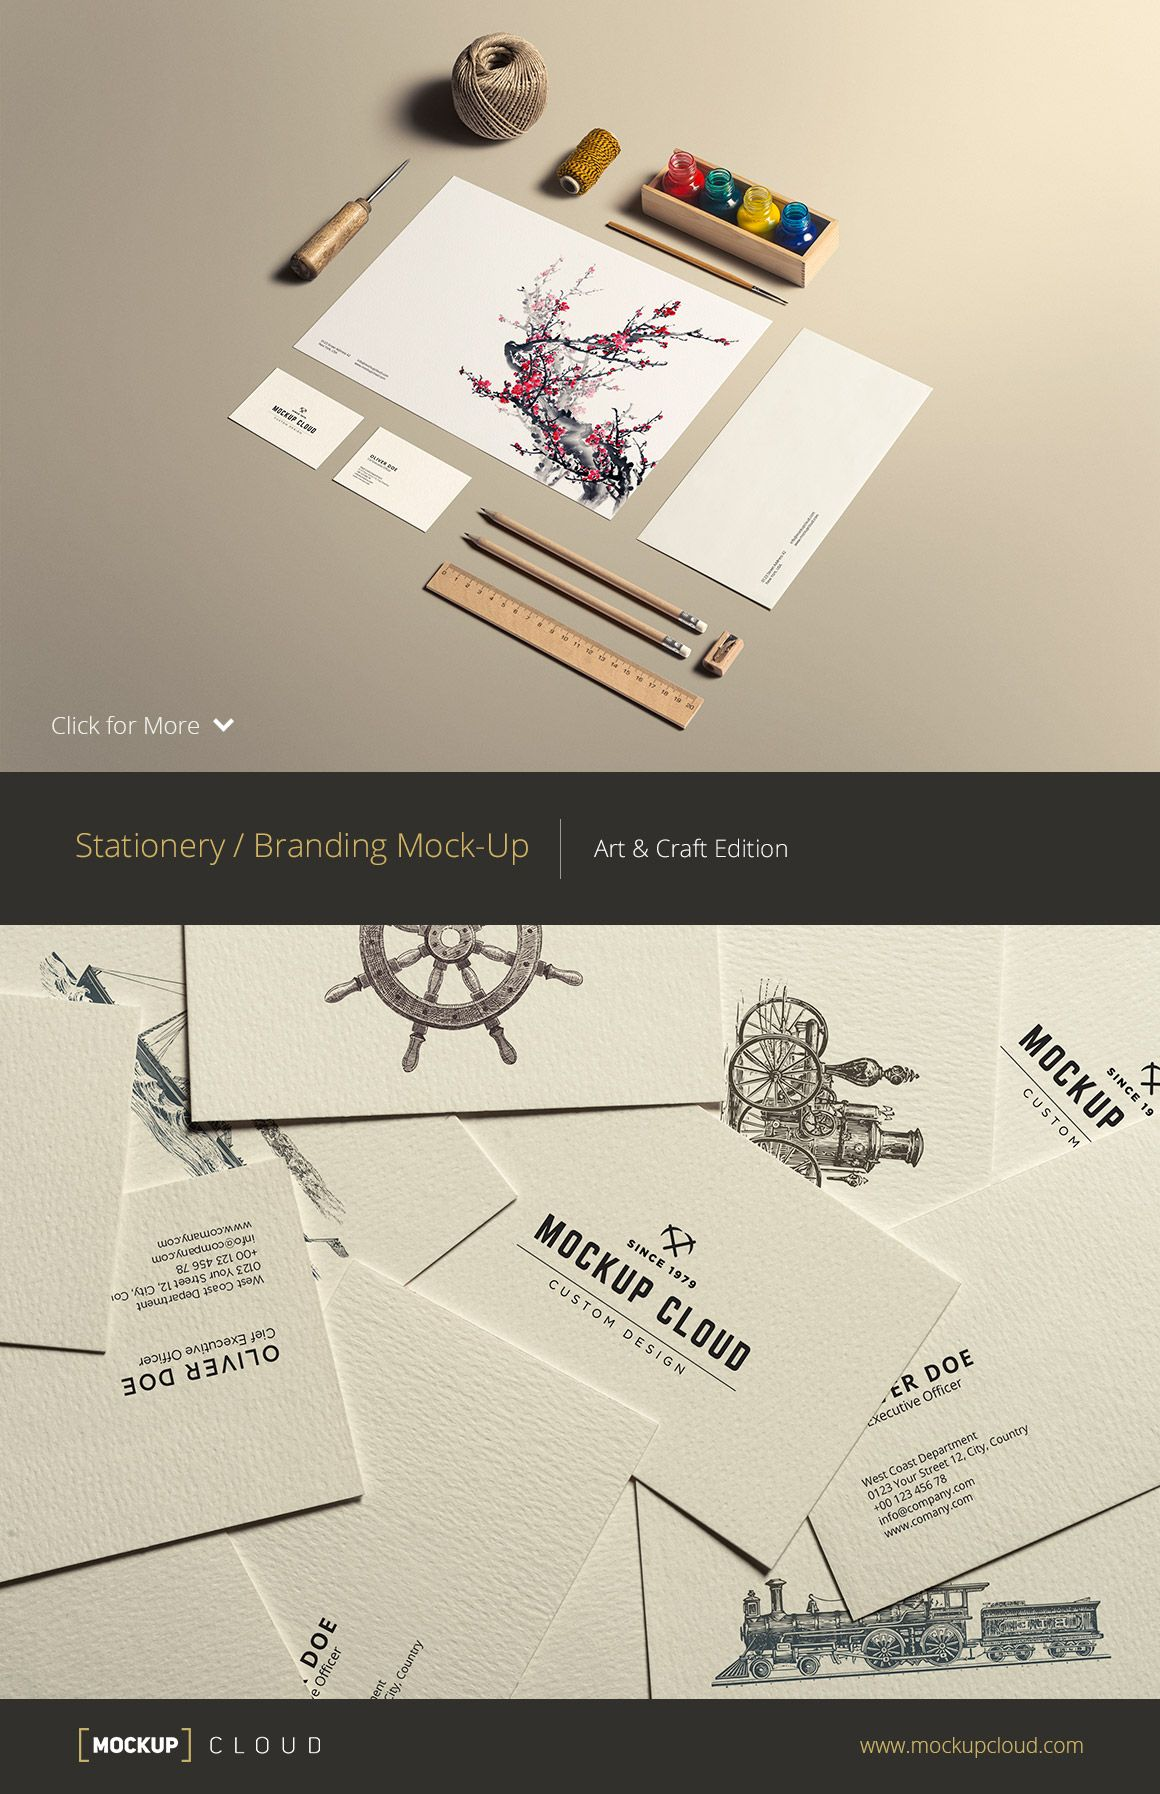 Art & Craft Stationery Mock Up by Mockup Cloud on creativemarket